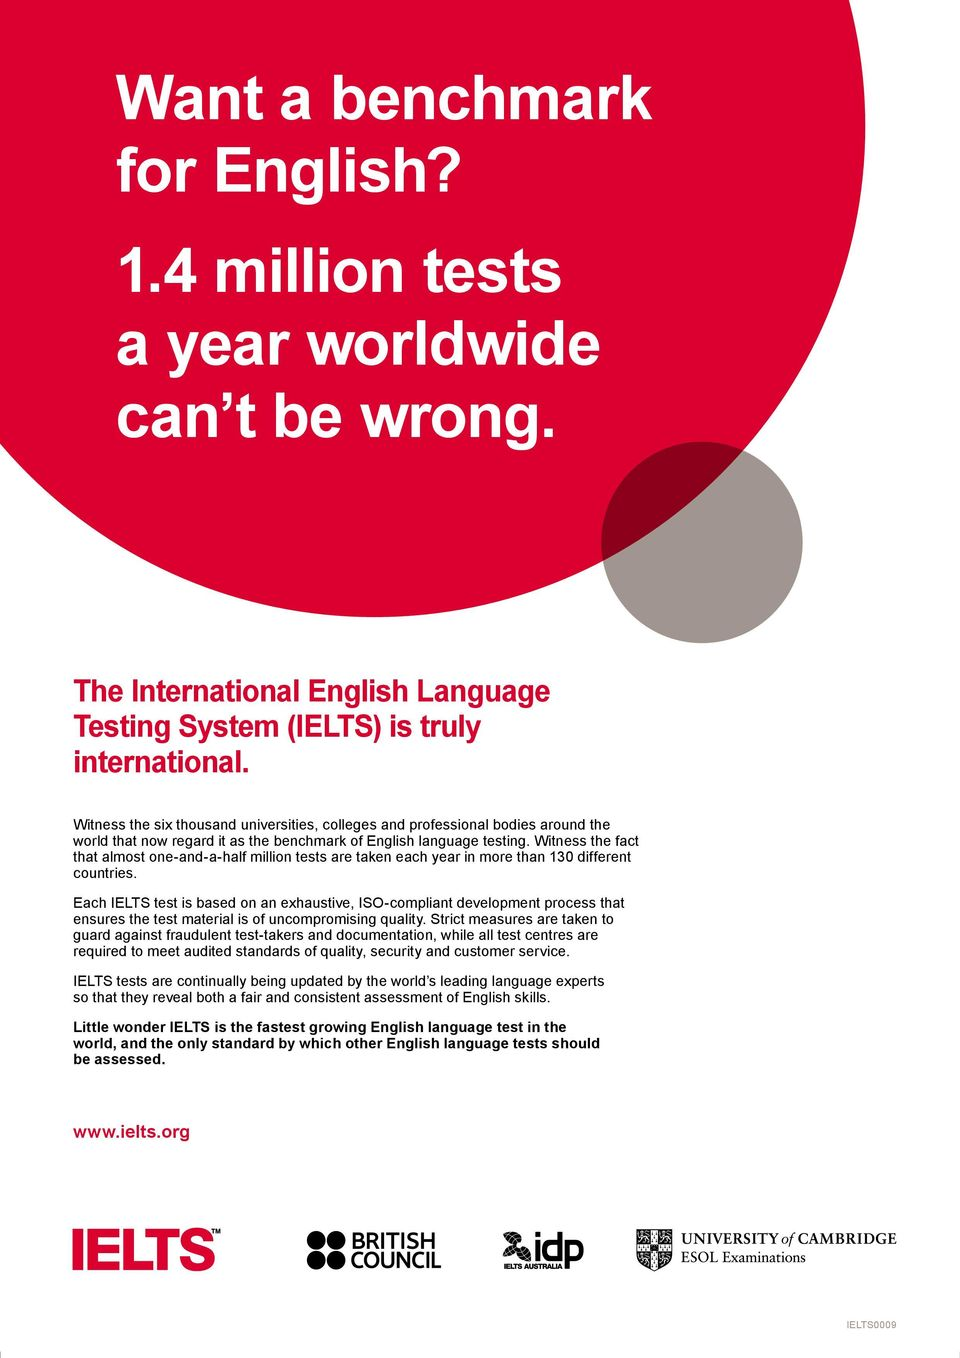 Witness the fact that almost one-and-a-half million tests are taken each year in more than 130 different countries.